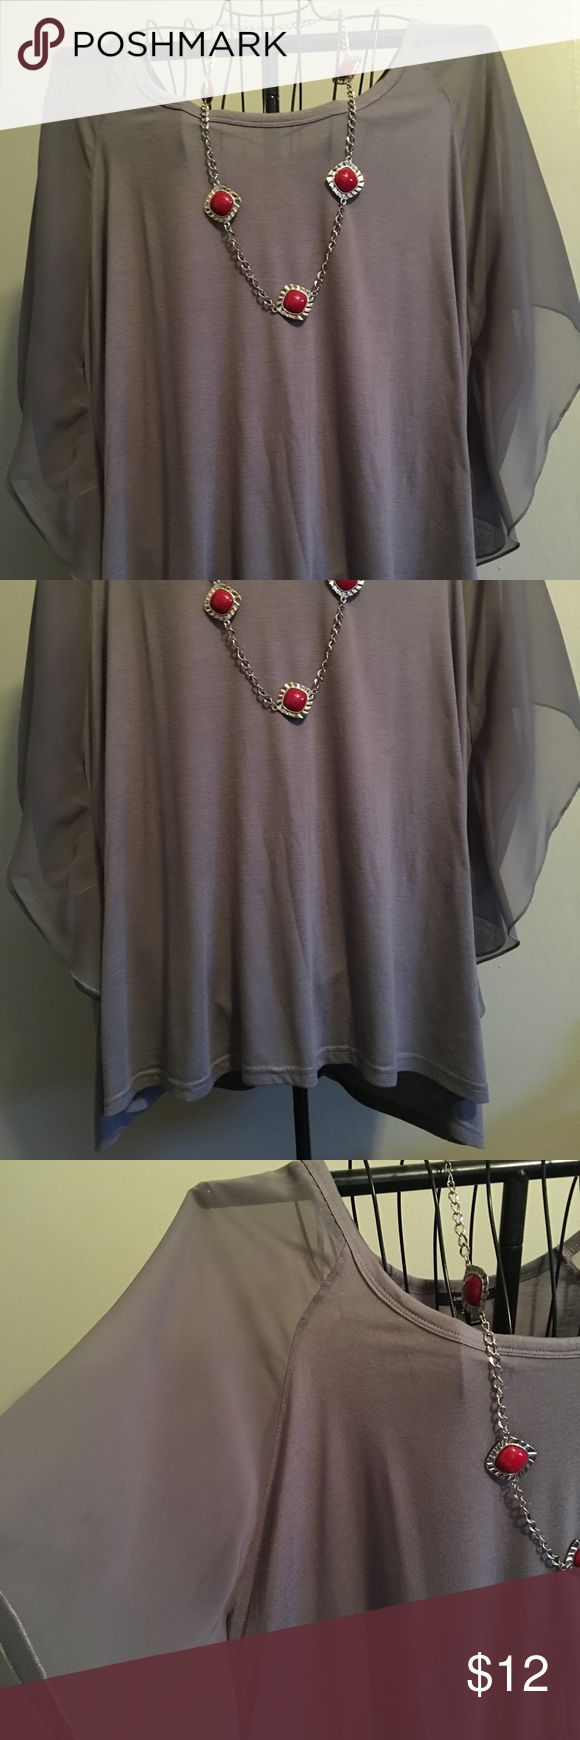 Sweet and simple! EUC ladies plus size top. Sheer sleeves with a knit bodice. Slight assymetrical hem. ashley taylor Tops Blouses